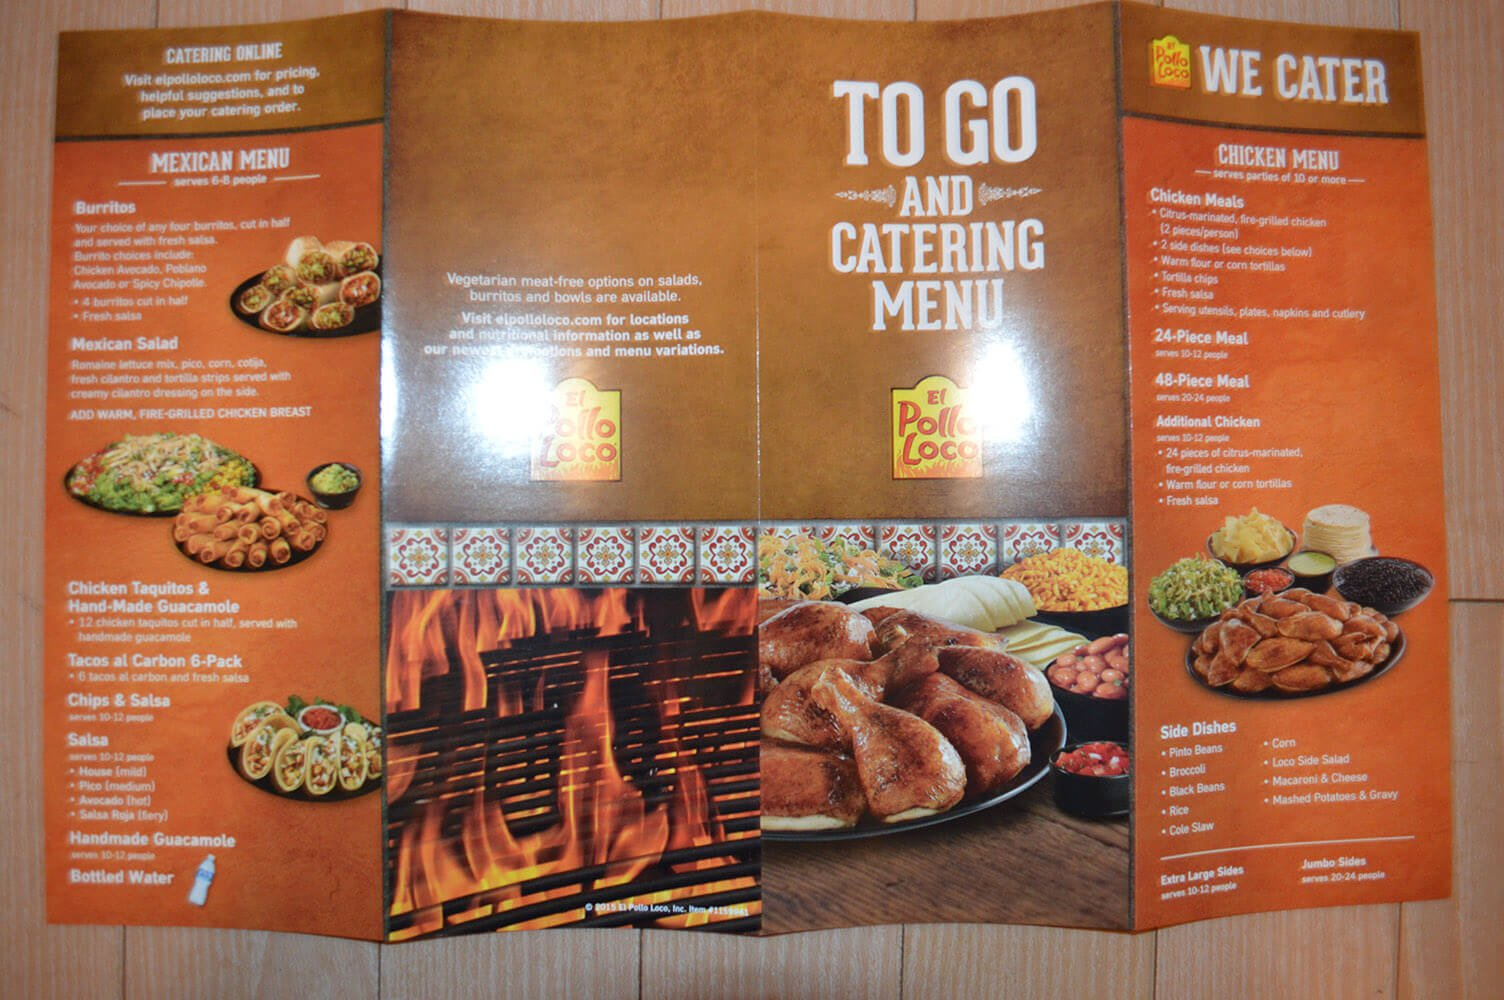 image about El Pollo Loco Coupons Printable named El pollo loco catering coupon codes : Cyber monday mattress promotions